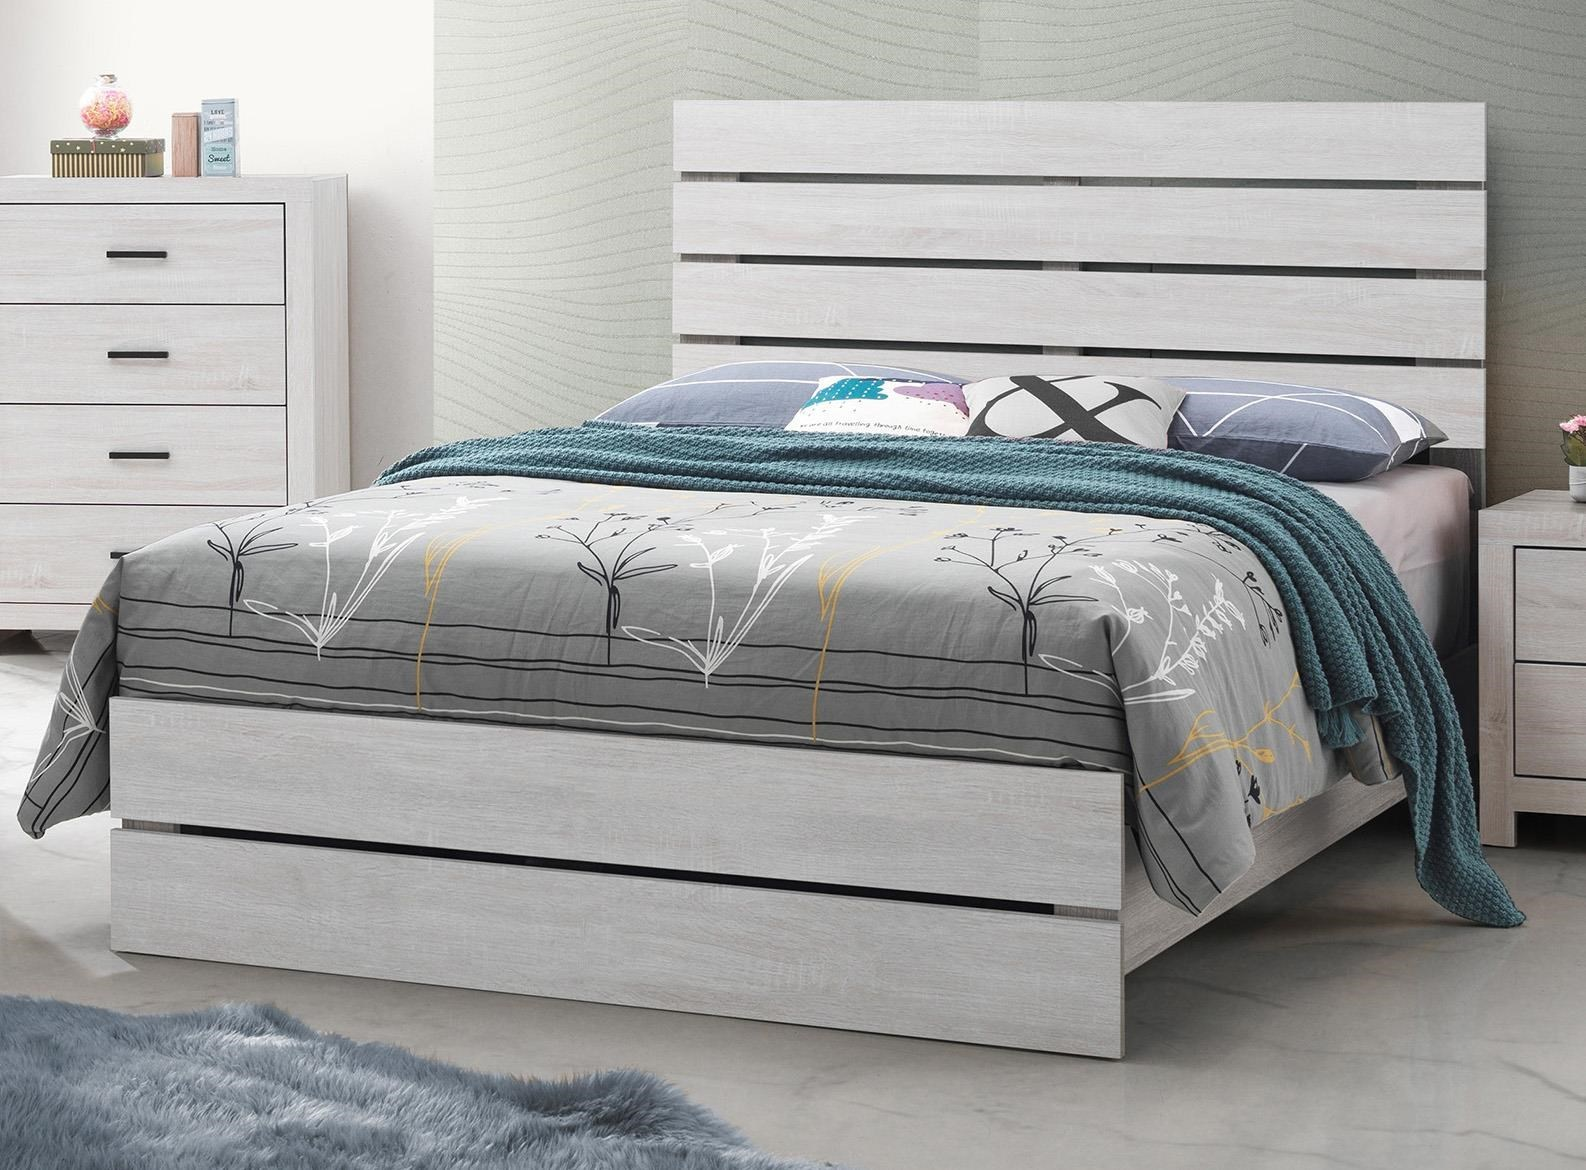 Picture of: Coaster Coastal 207051f White Full Size Platform Bed Sam Levitz Furniture Platform Beds Low Profile Beds